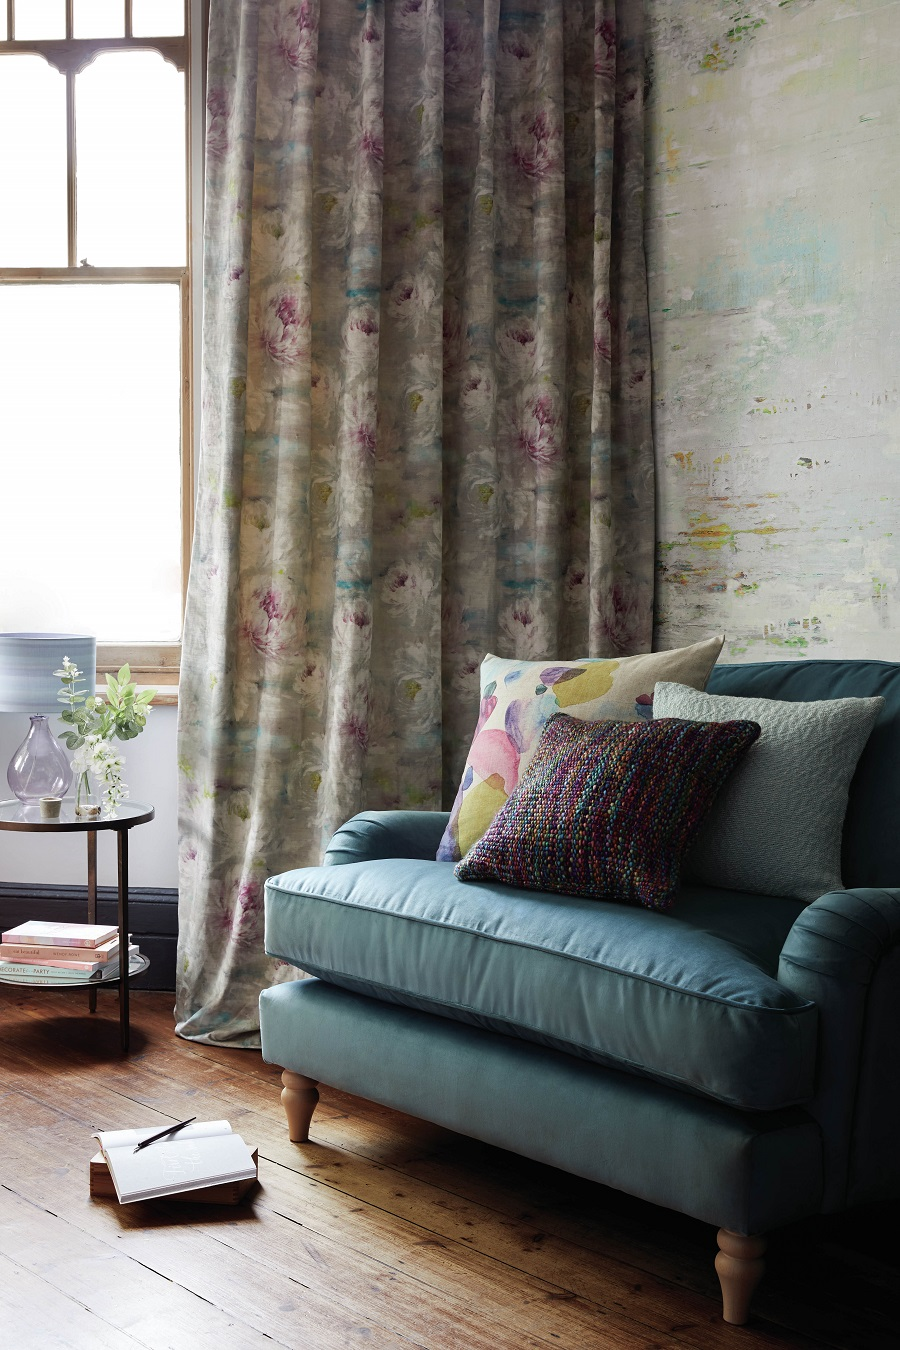 Common Interior Design Mistakes and How to Avoid Them - curtains should always hang to the floor